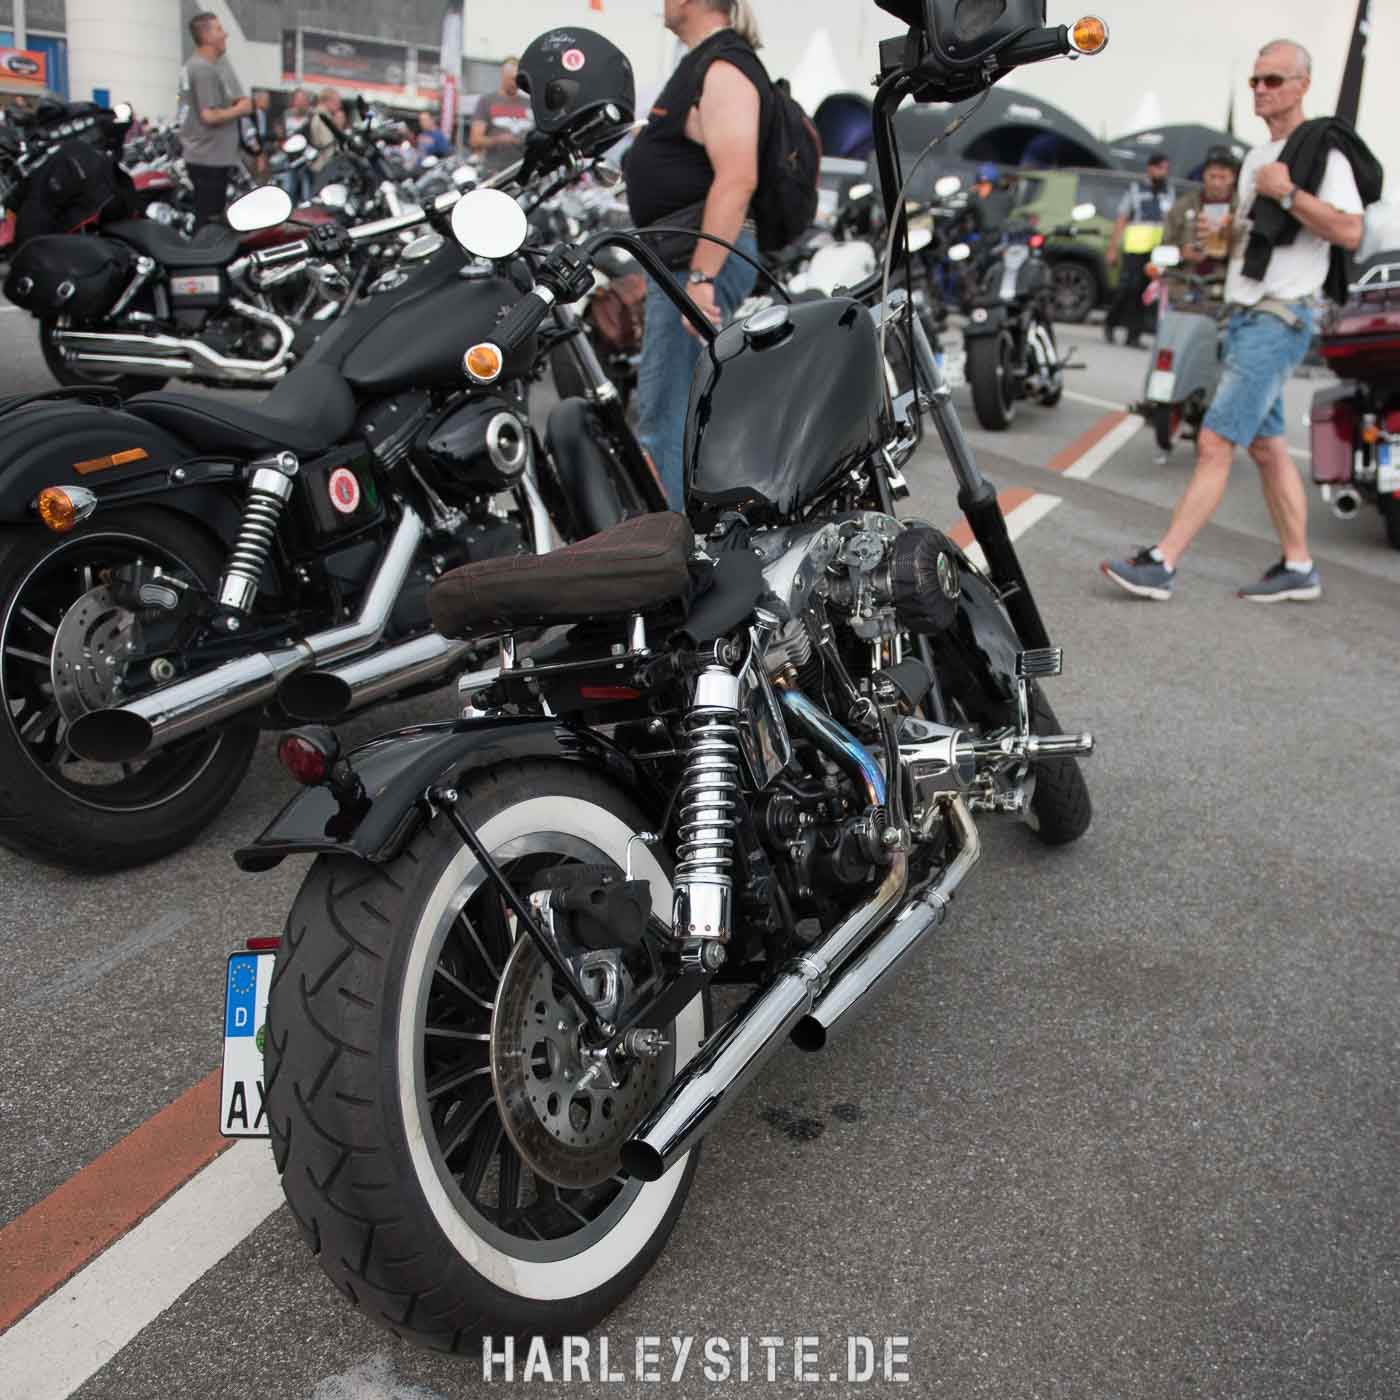 Hamburg Harley Days 3757